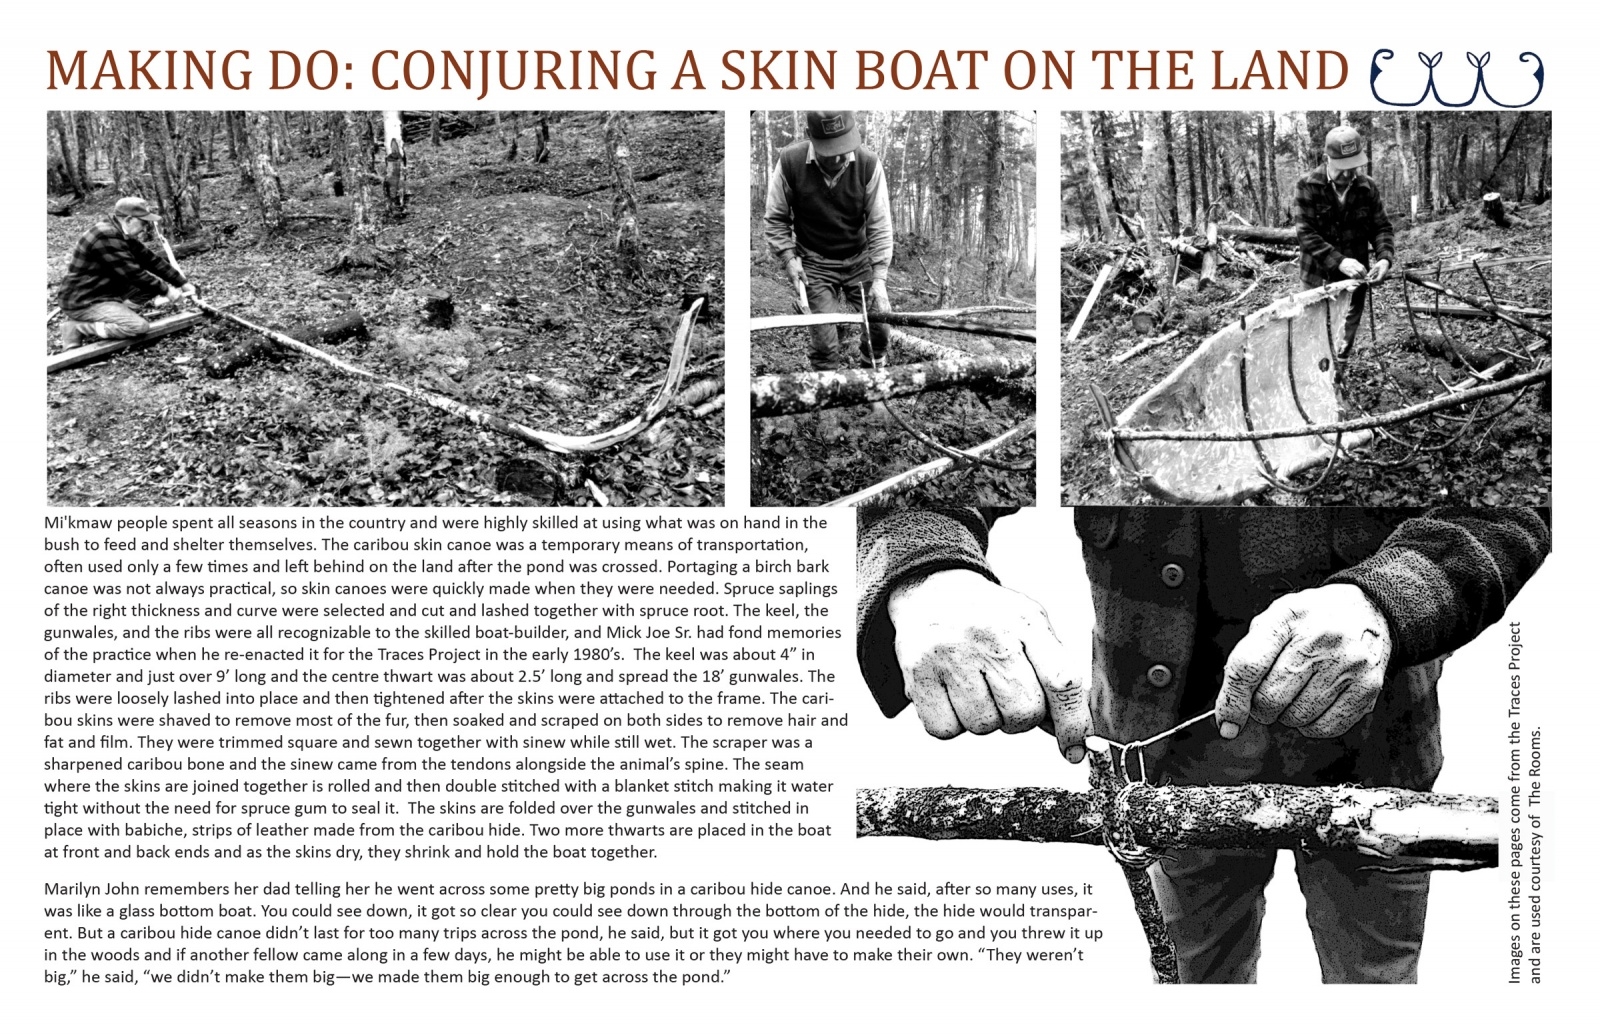 Making Do: Conjuring a Skin Boat on the Land